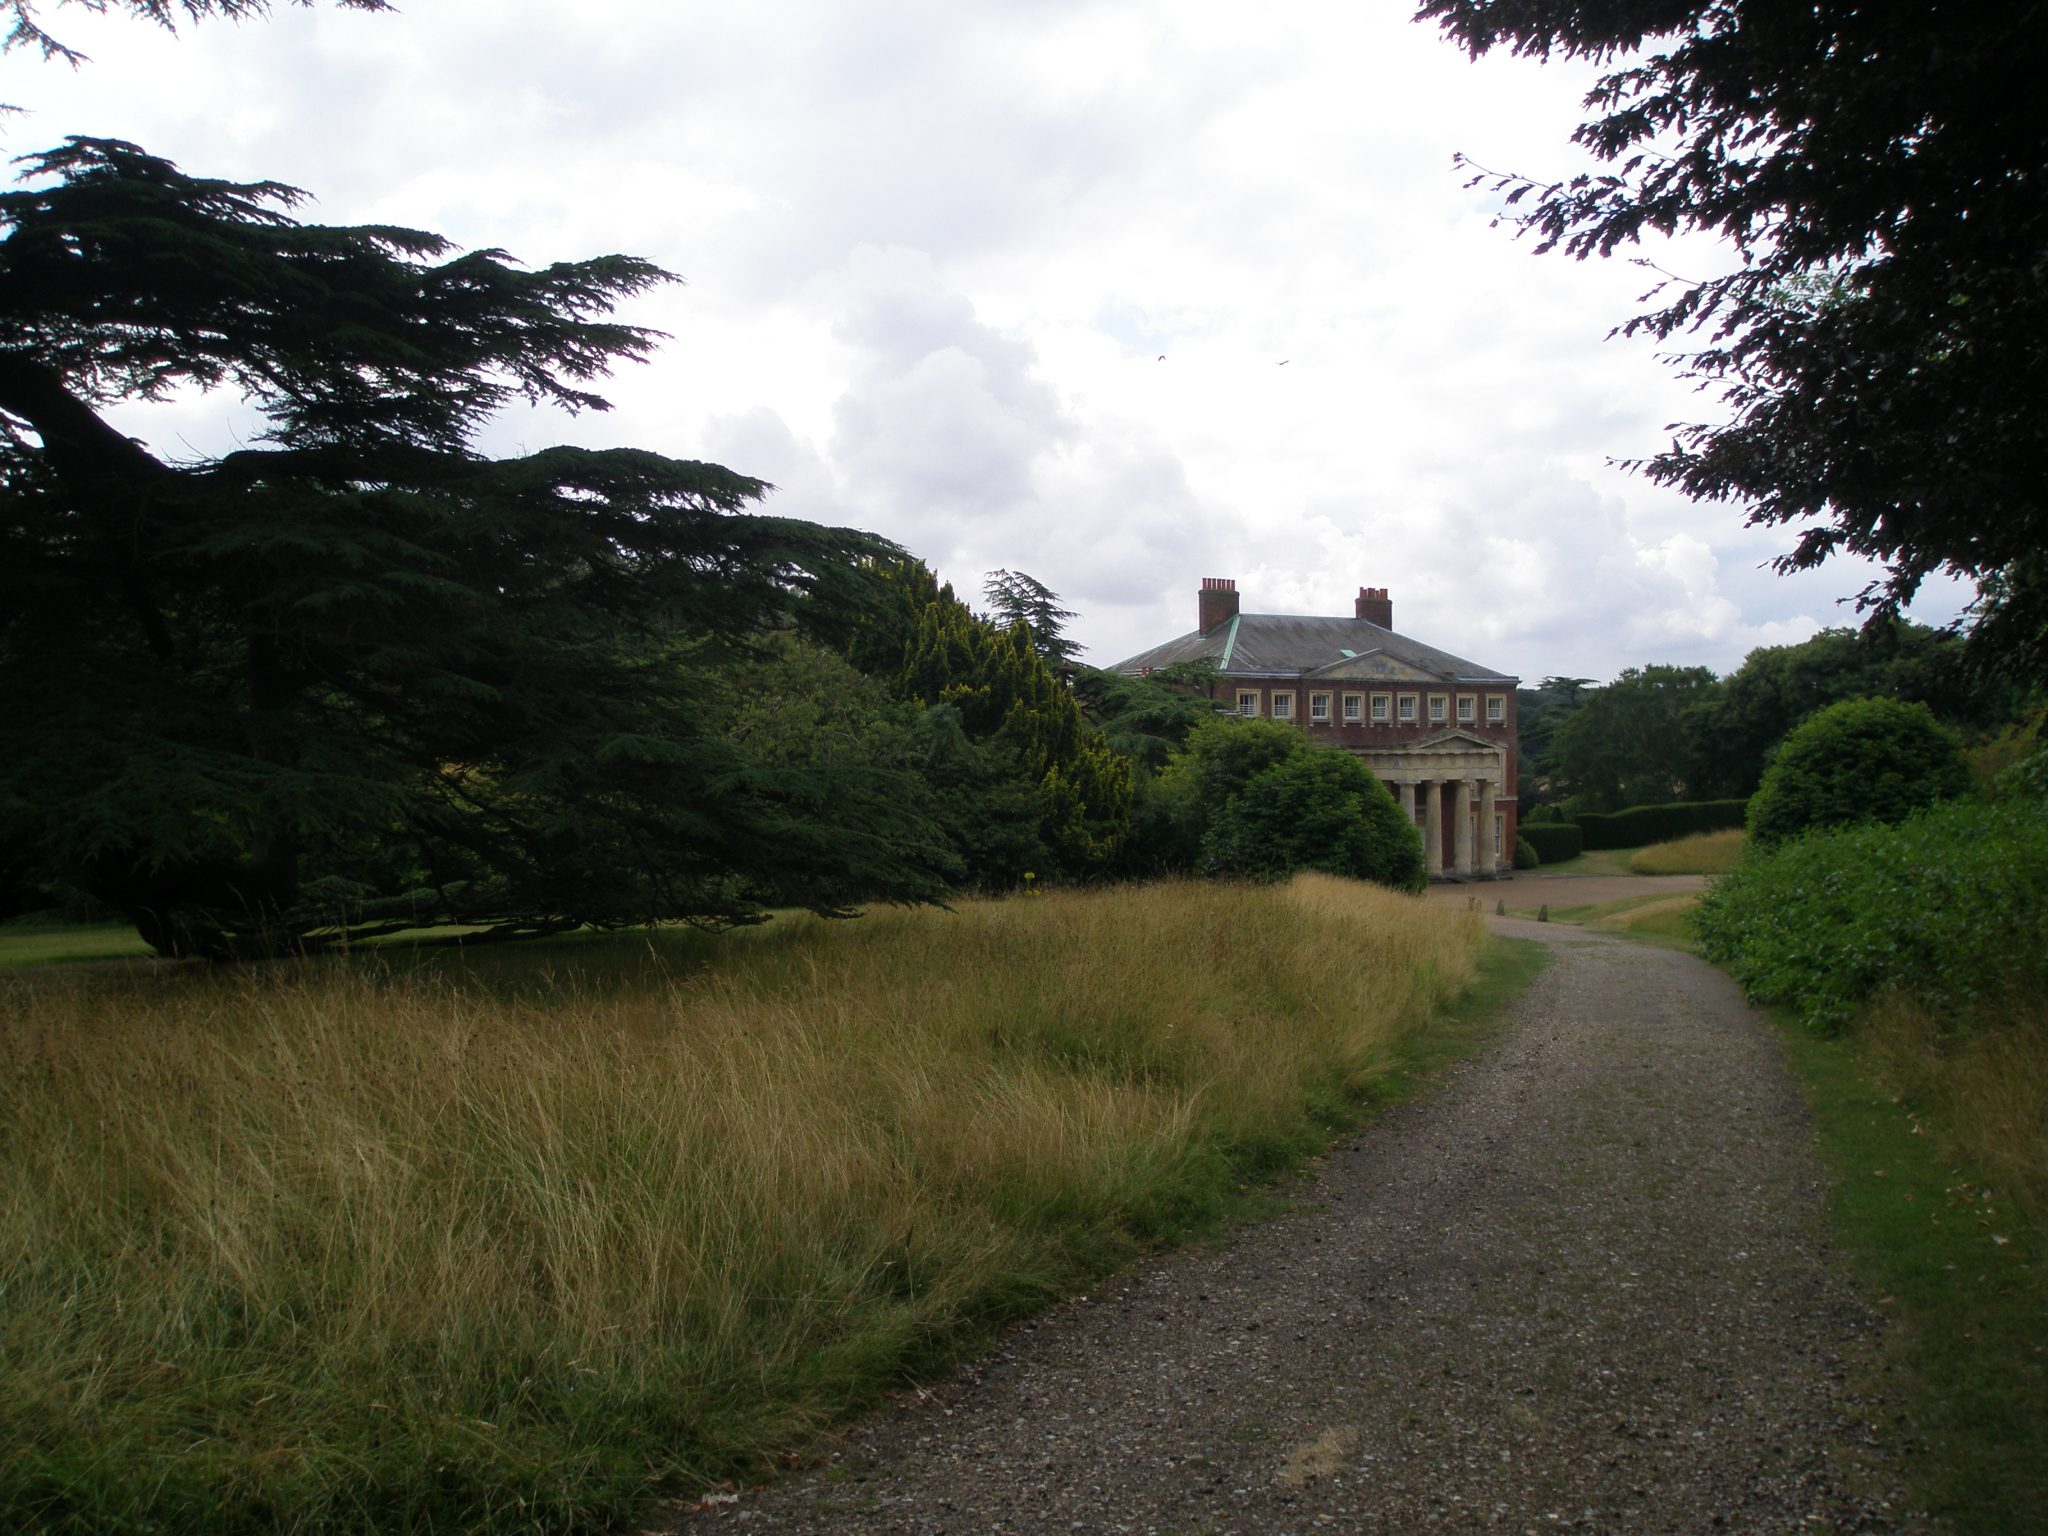 We left the Gravel Garden, and wandered down part of the half-mile-long approach drive, which runs north-west of the House. The most majestic tree along this drive is an ancient Cedar of Lebanon.